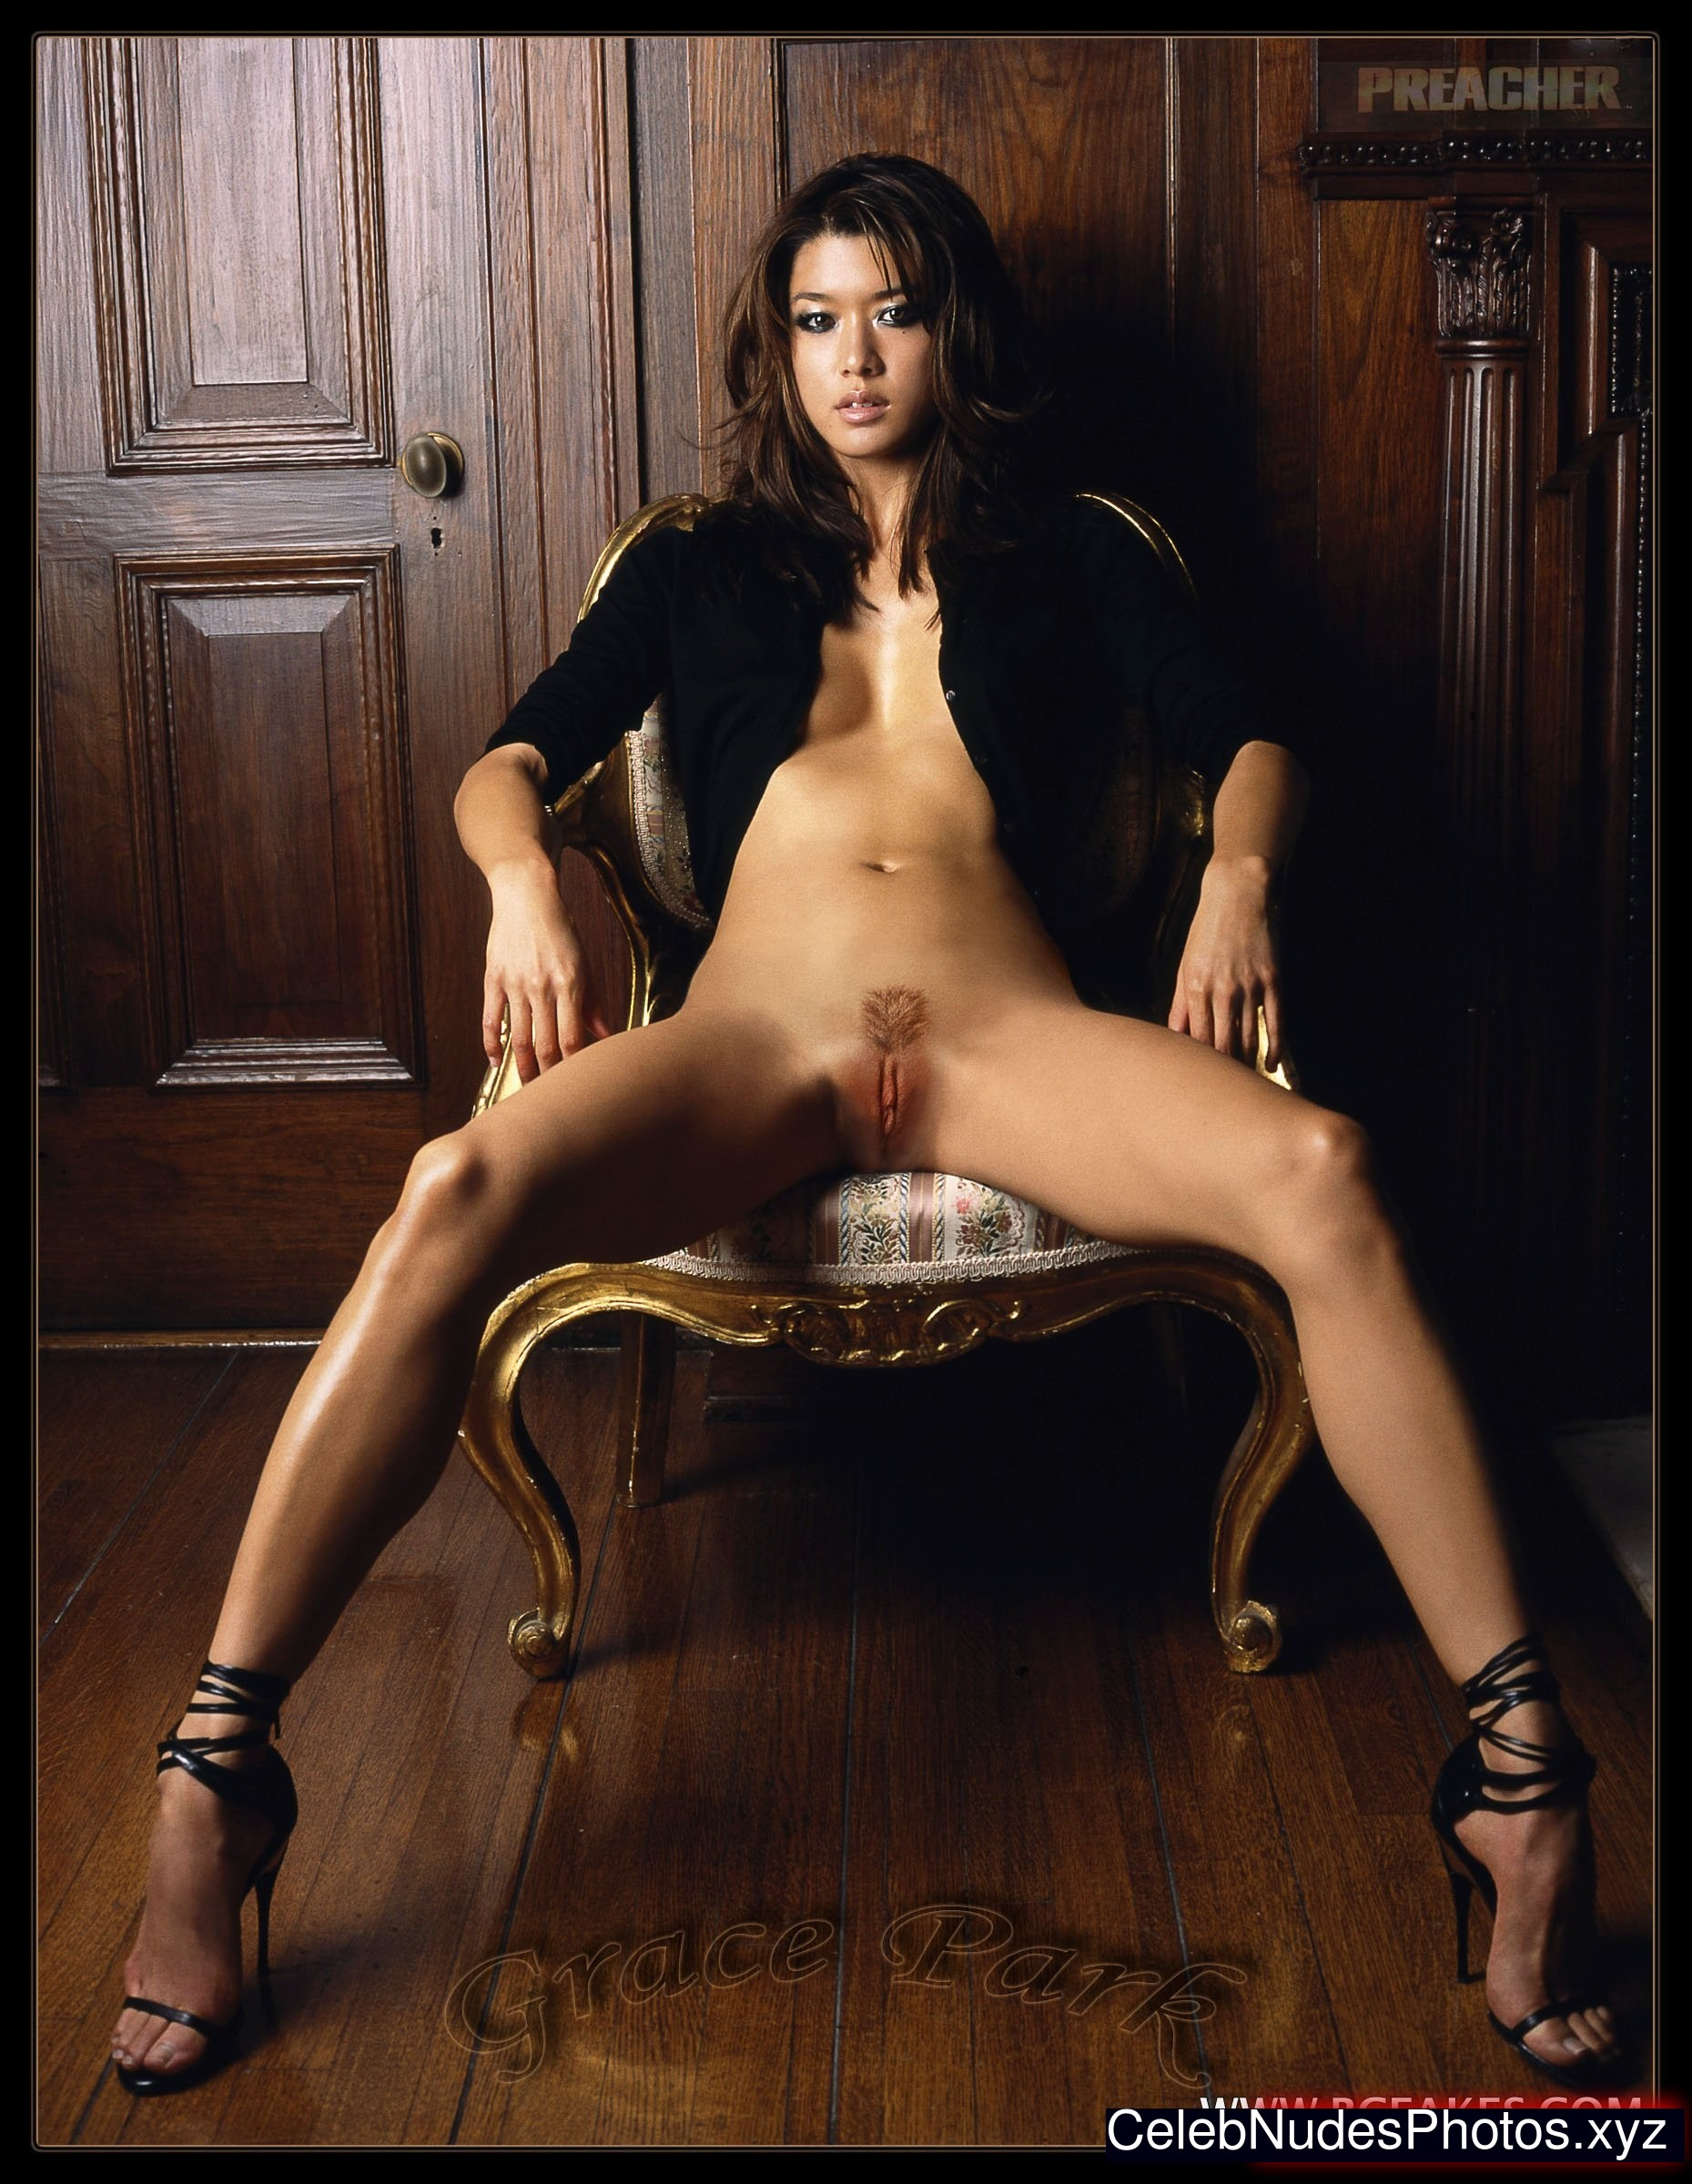 Fake nudes of grace park pic